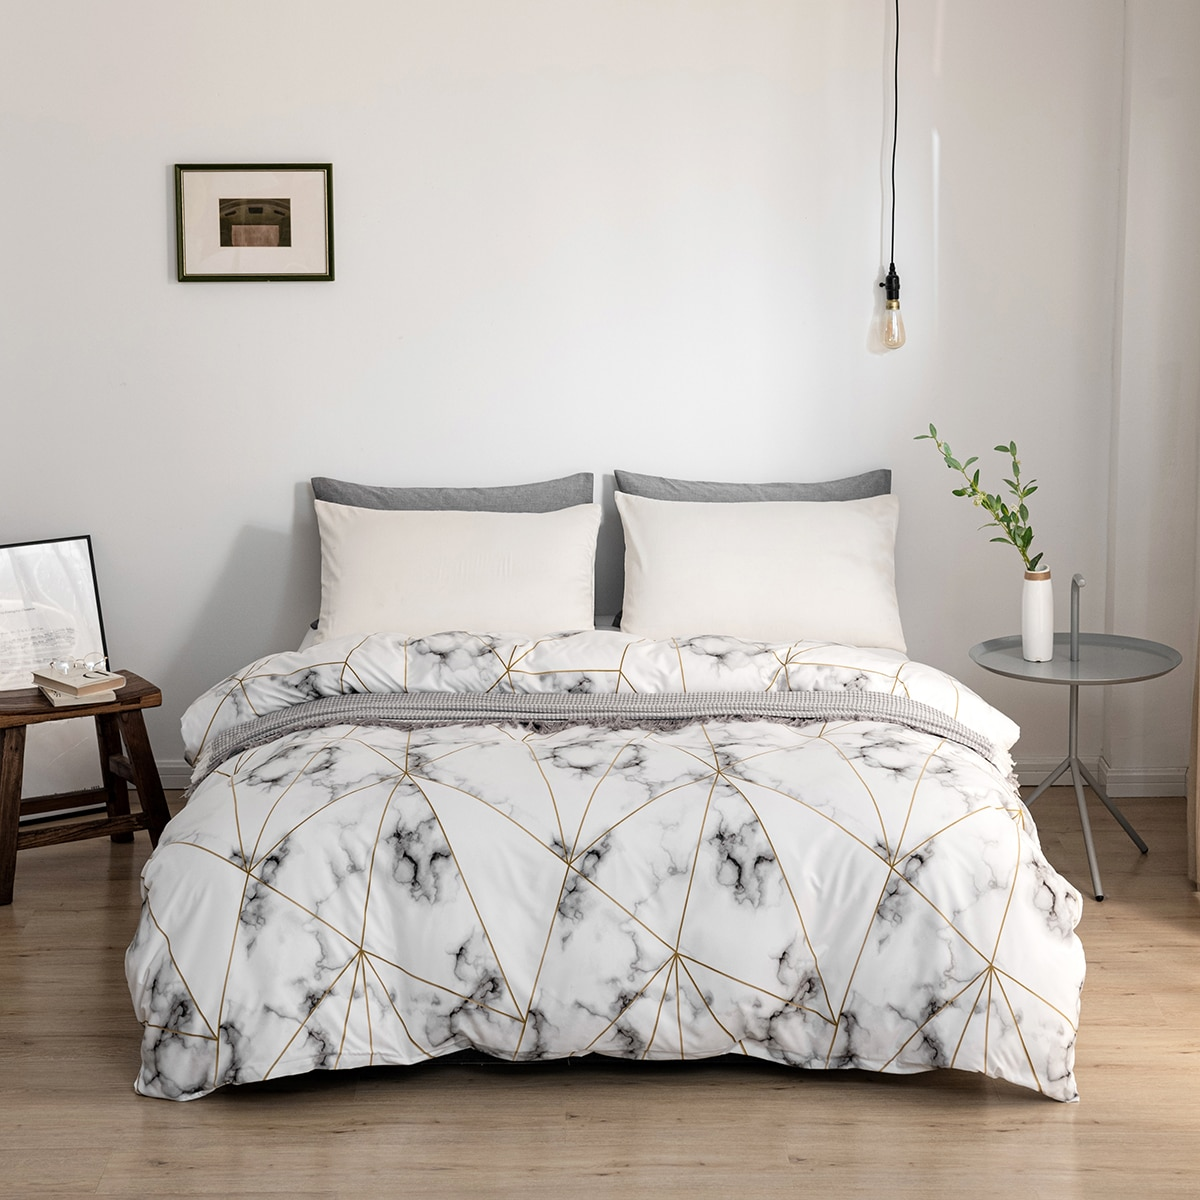 Marble Pattern Cover Without Filler, SHEIN  - buy with discount